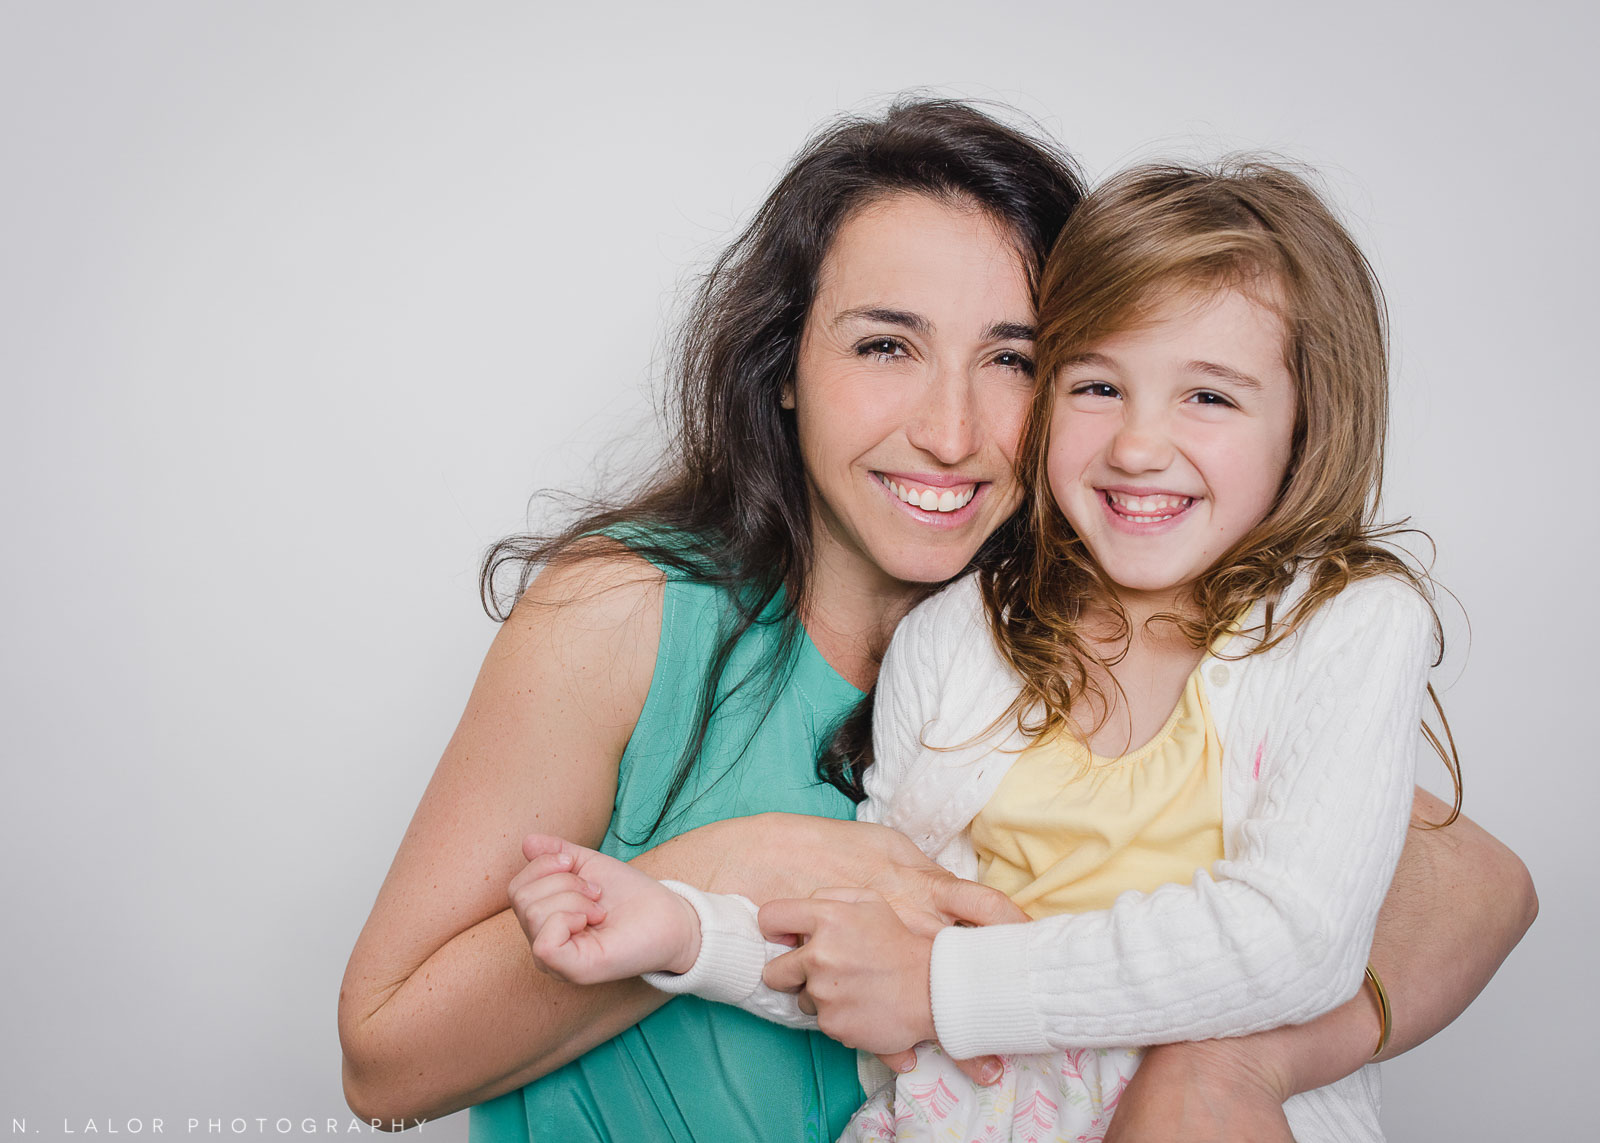 Mother daughter portrait. Mother's Day Mini Sessions with N. Lalor Photography. At Ella & Henry children's clothing store in New Canaan, Connecticut.